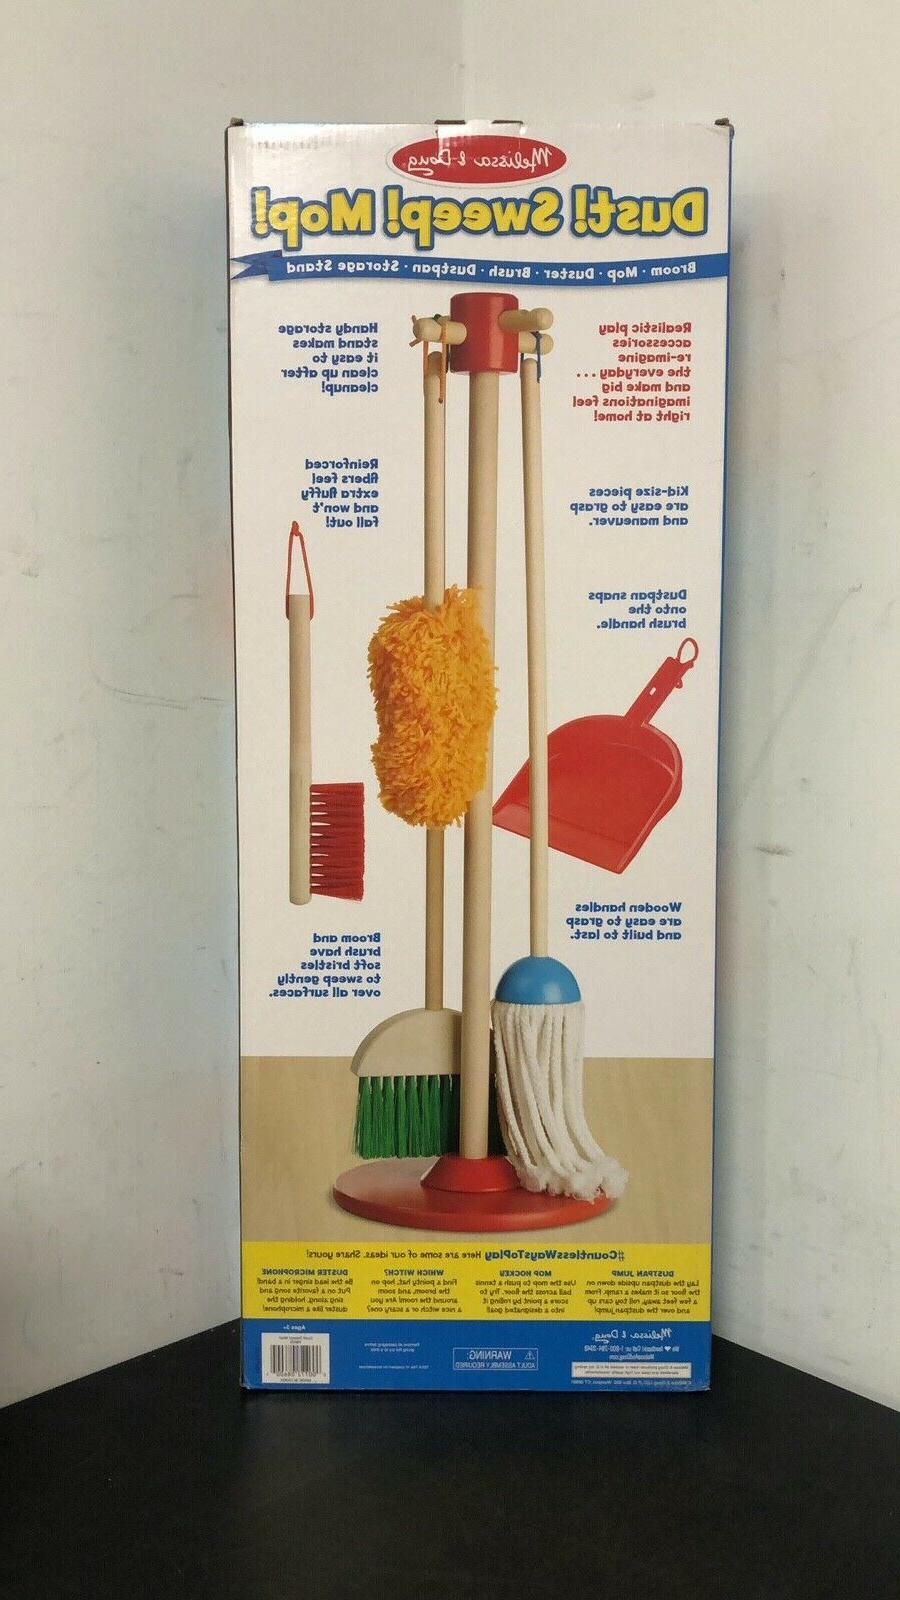 NEW! Melissa Let's Sweep! Mop! 6-Piece Play